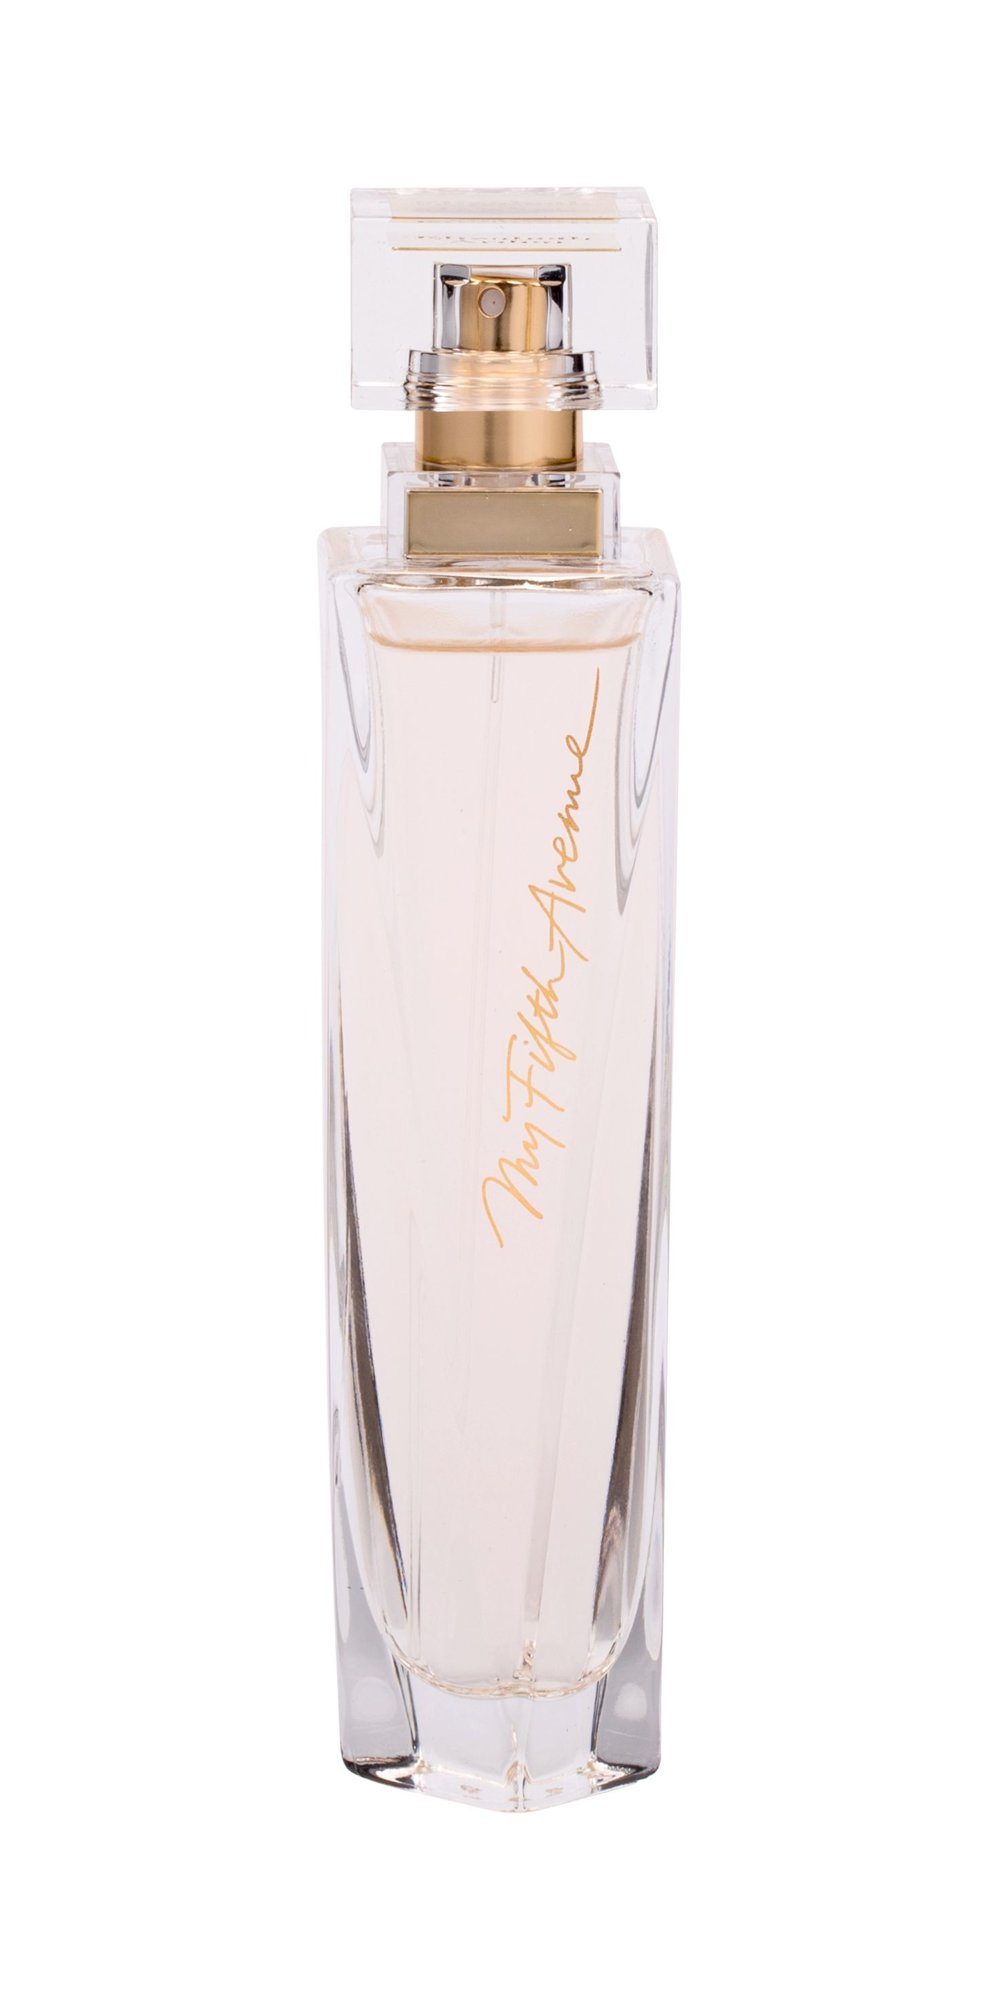 Elizabeth Arden My Fifth Avenue Eau de Parfum 50ml